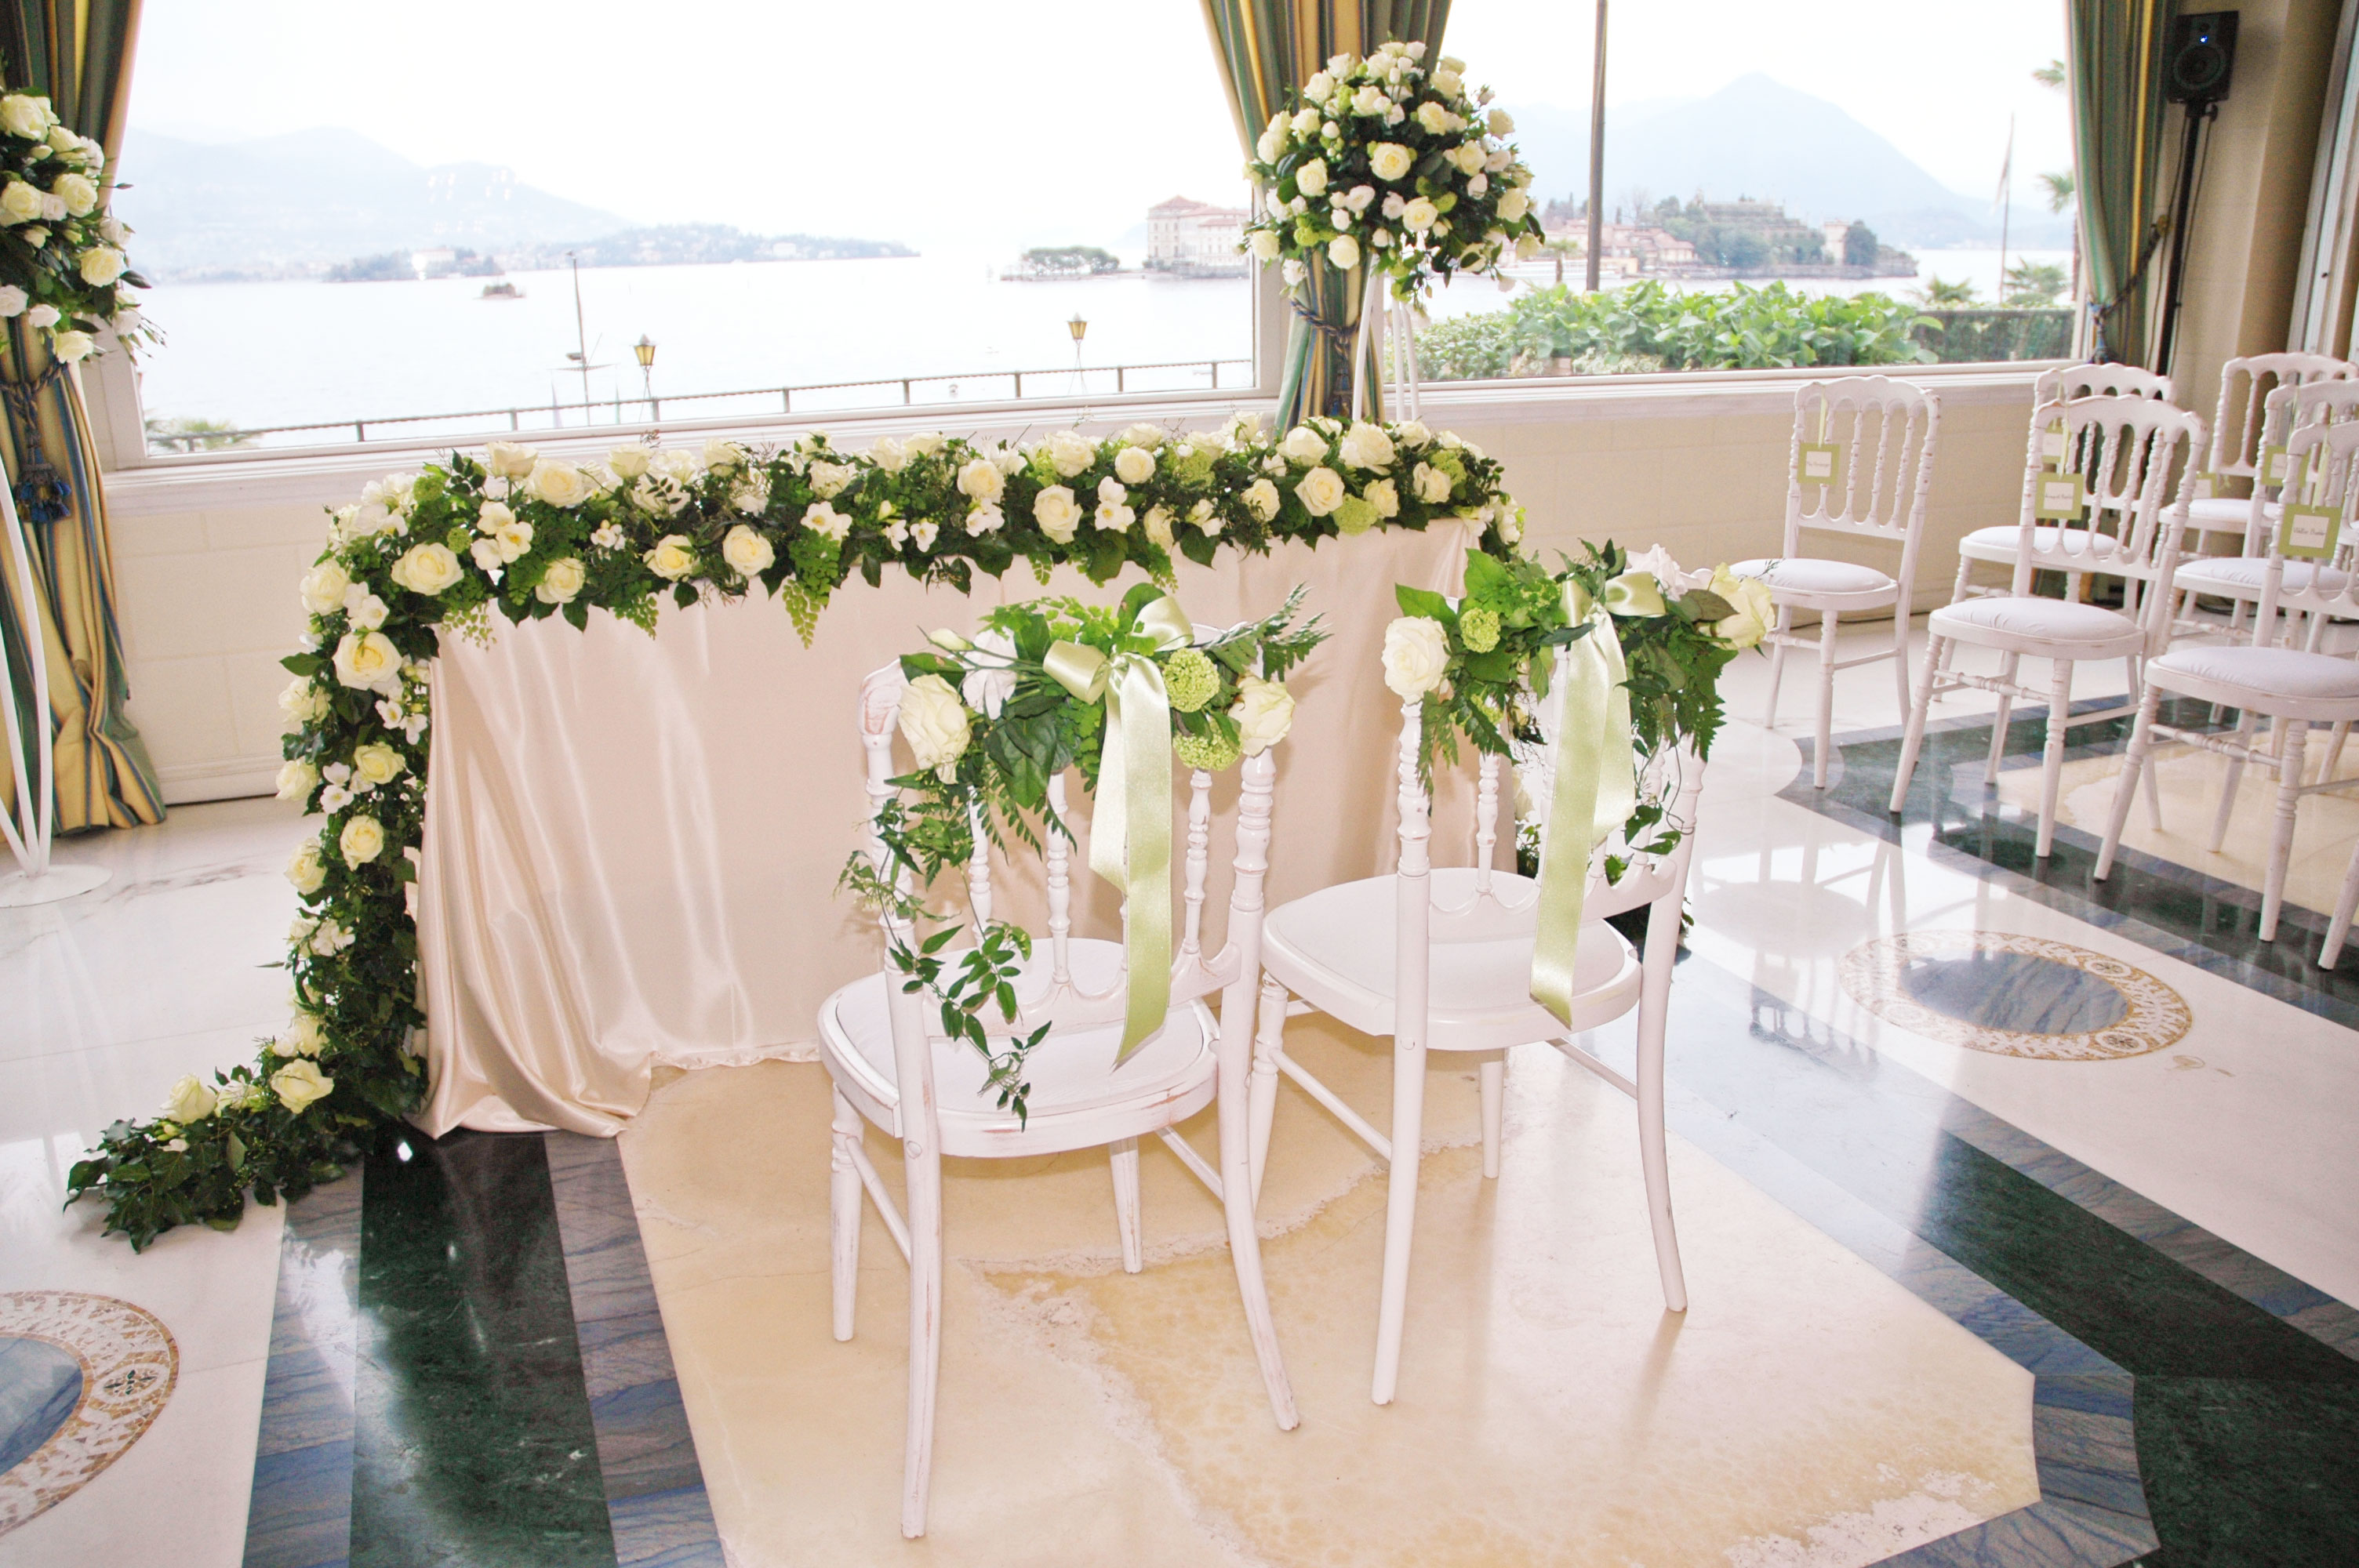 Floral decorations for a wedding on Lake Maggiore by Giuseppina Comoli